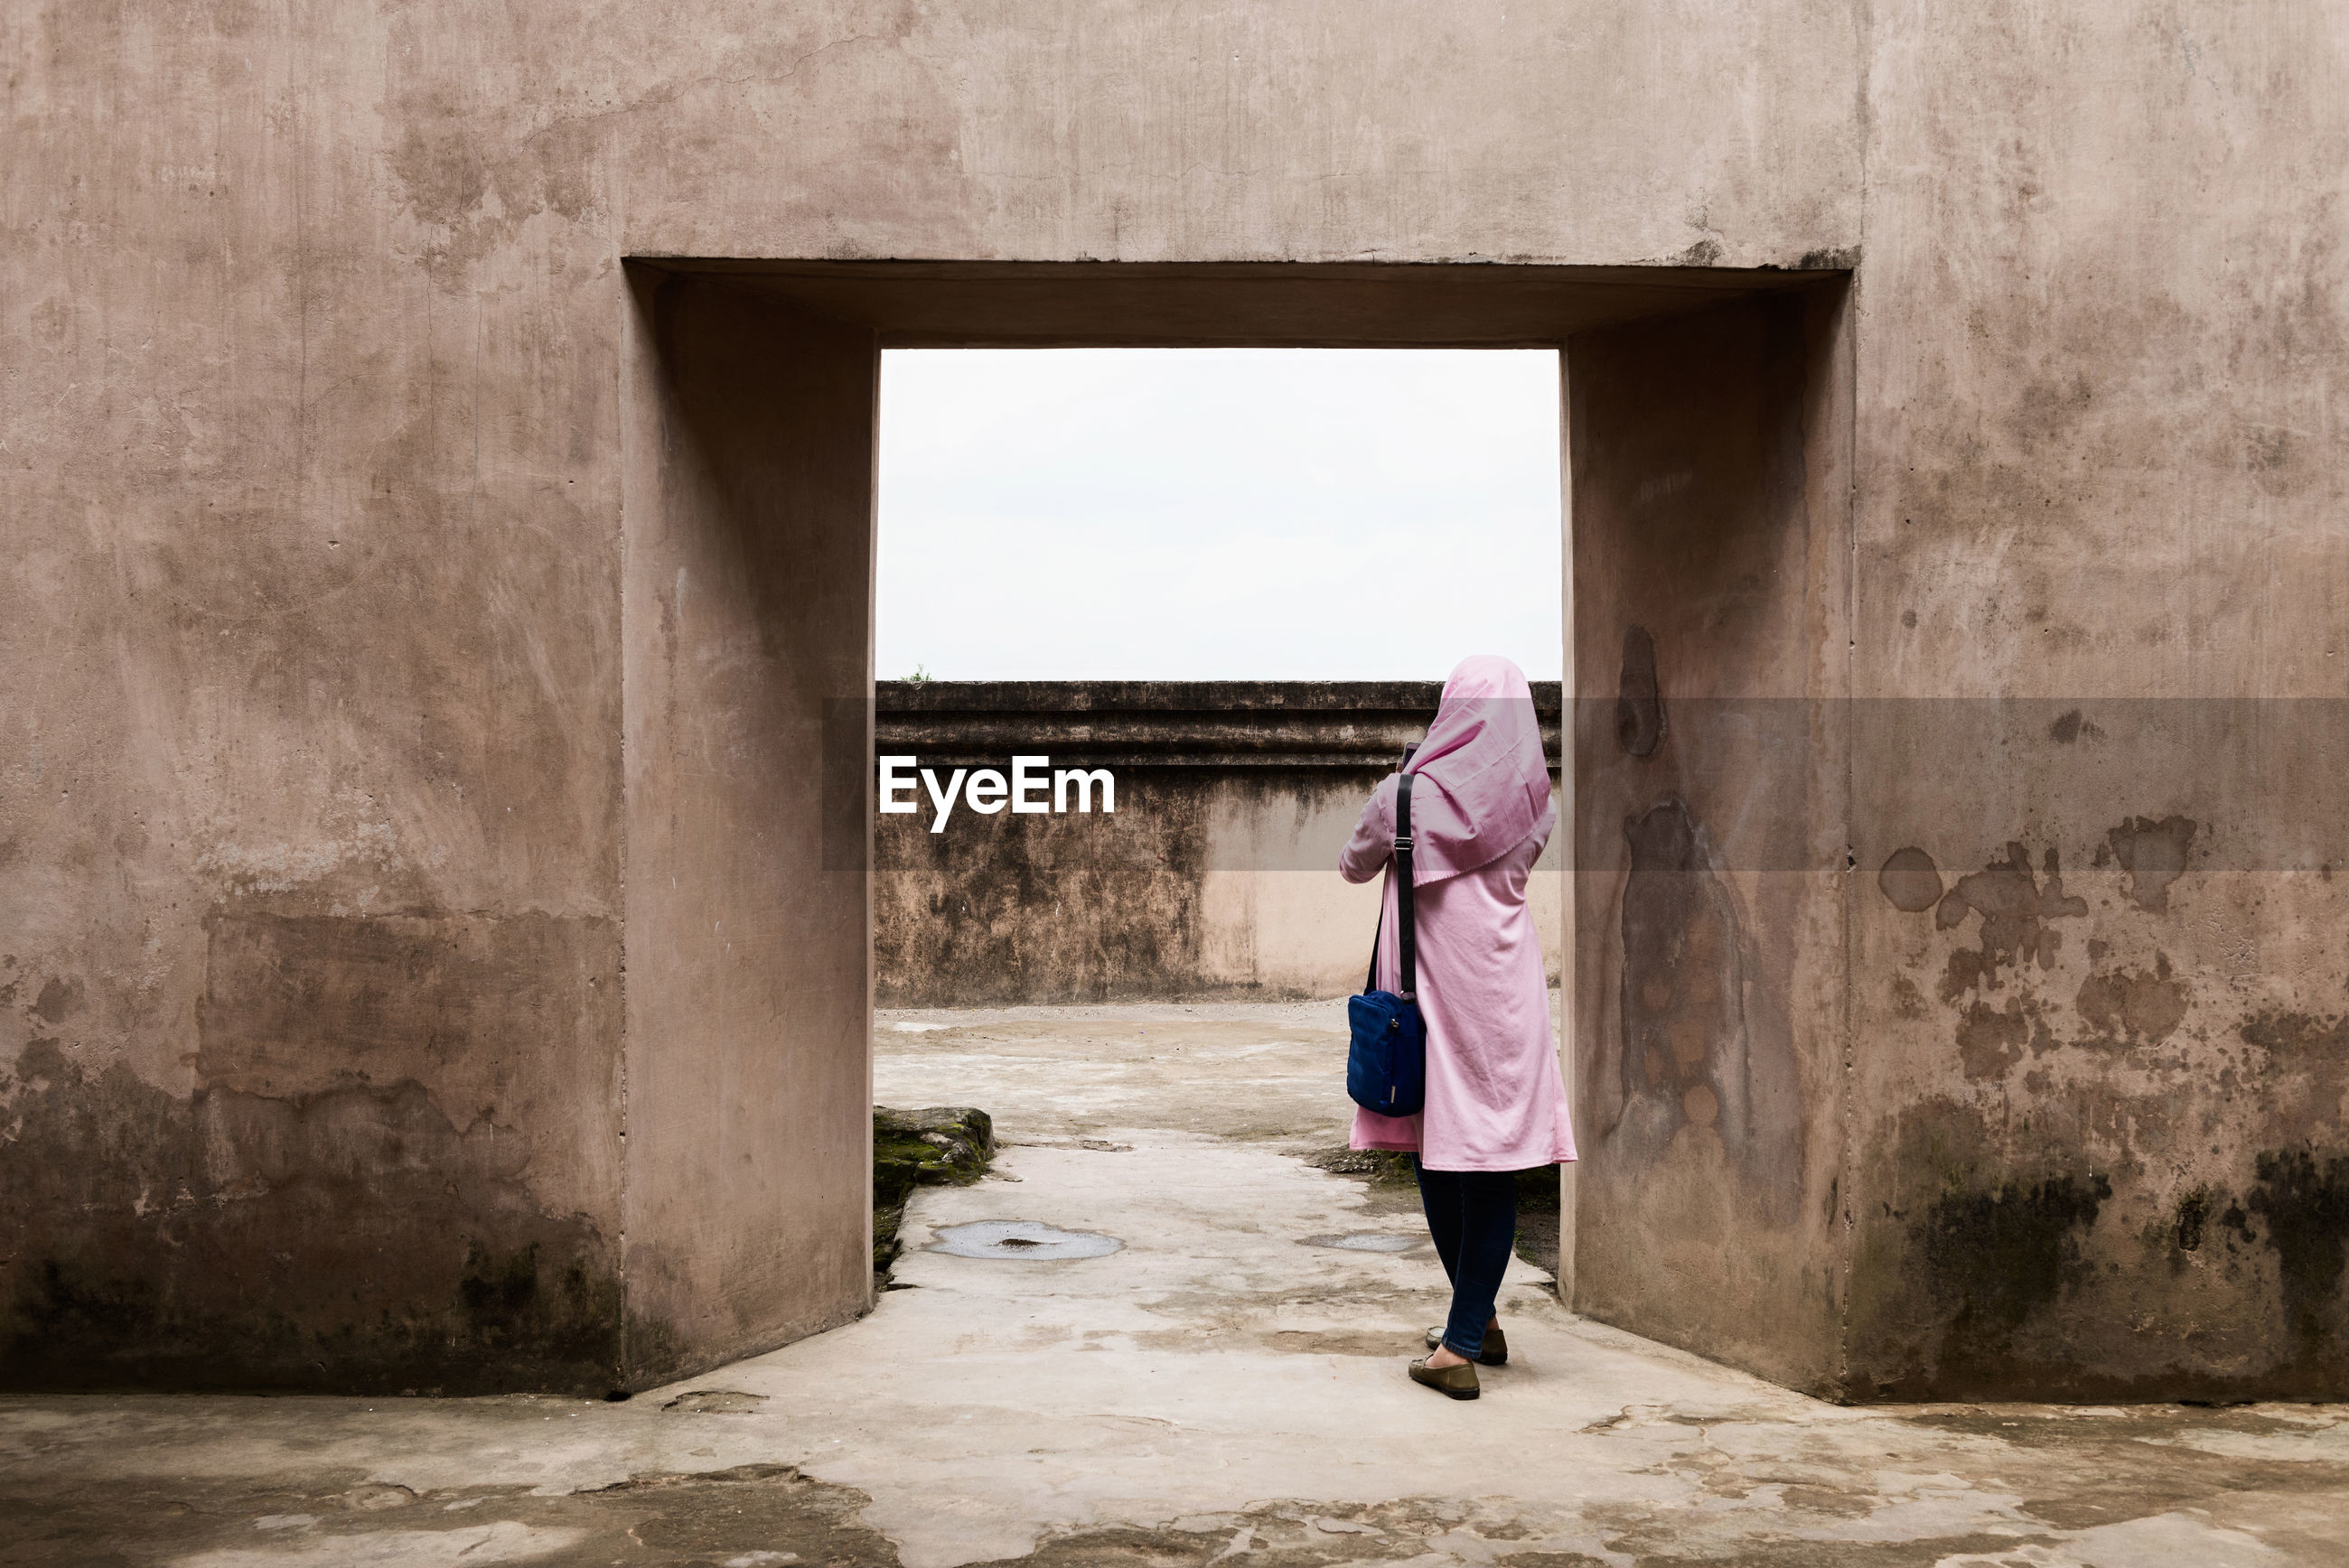 Rear view of woman in hijab standing against wall